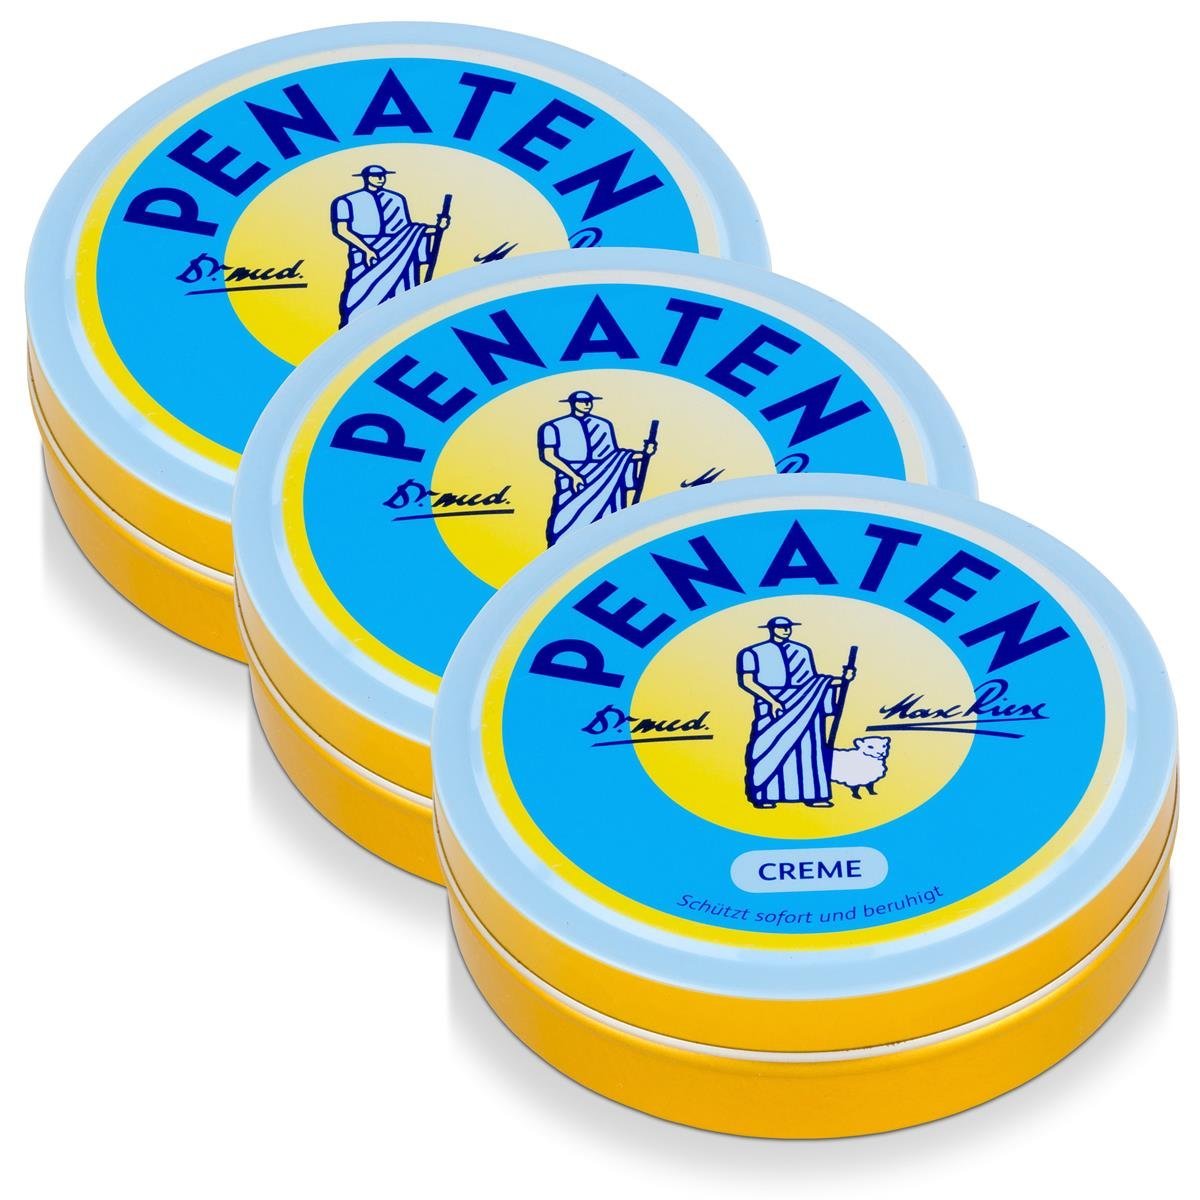 Baby Creme - 150ml (Pack of 12) by Penaten